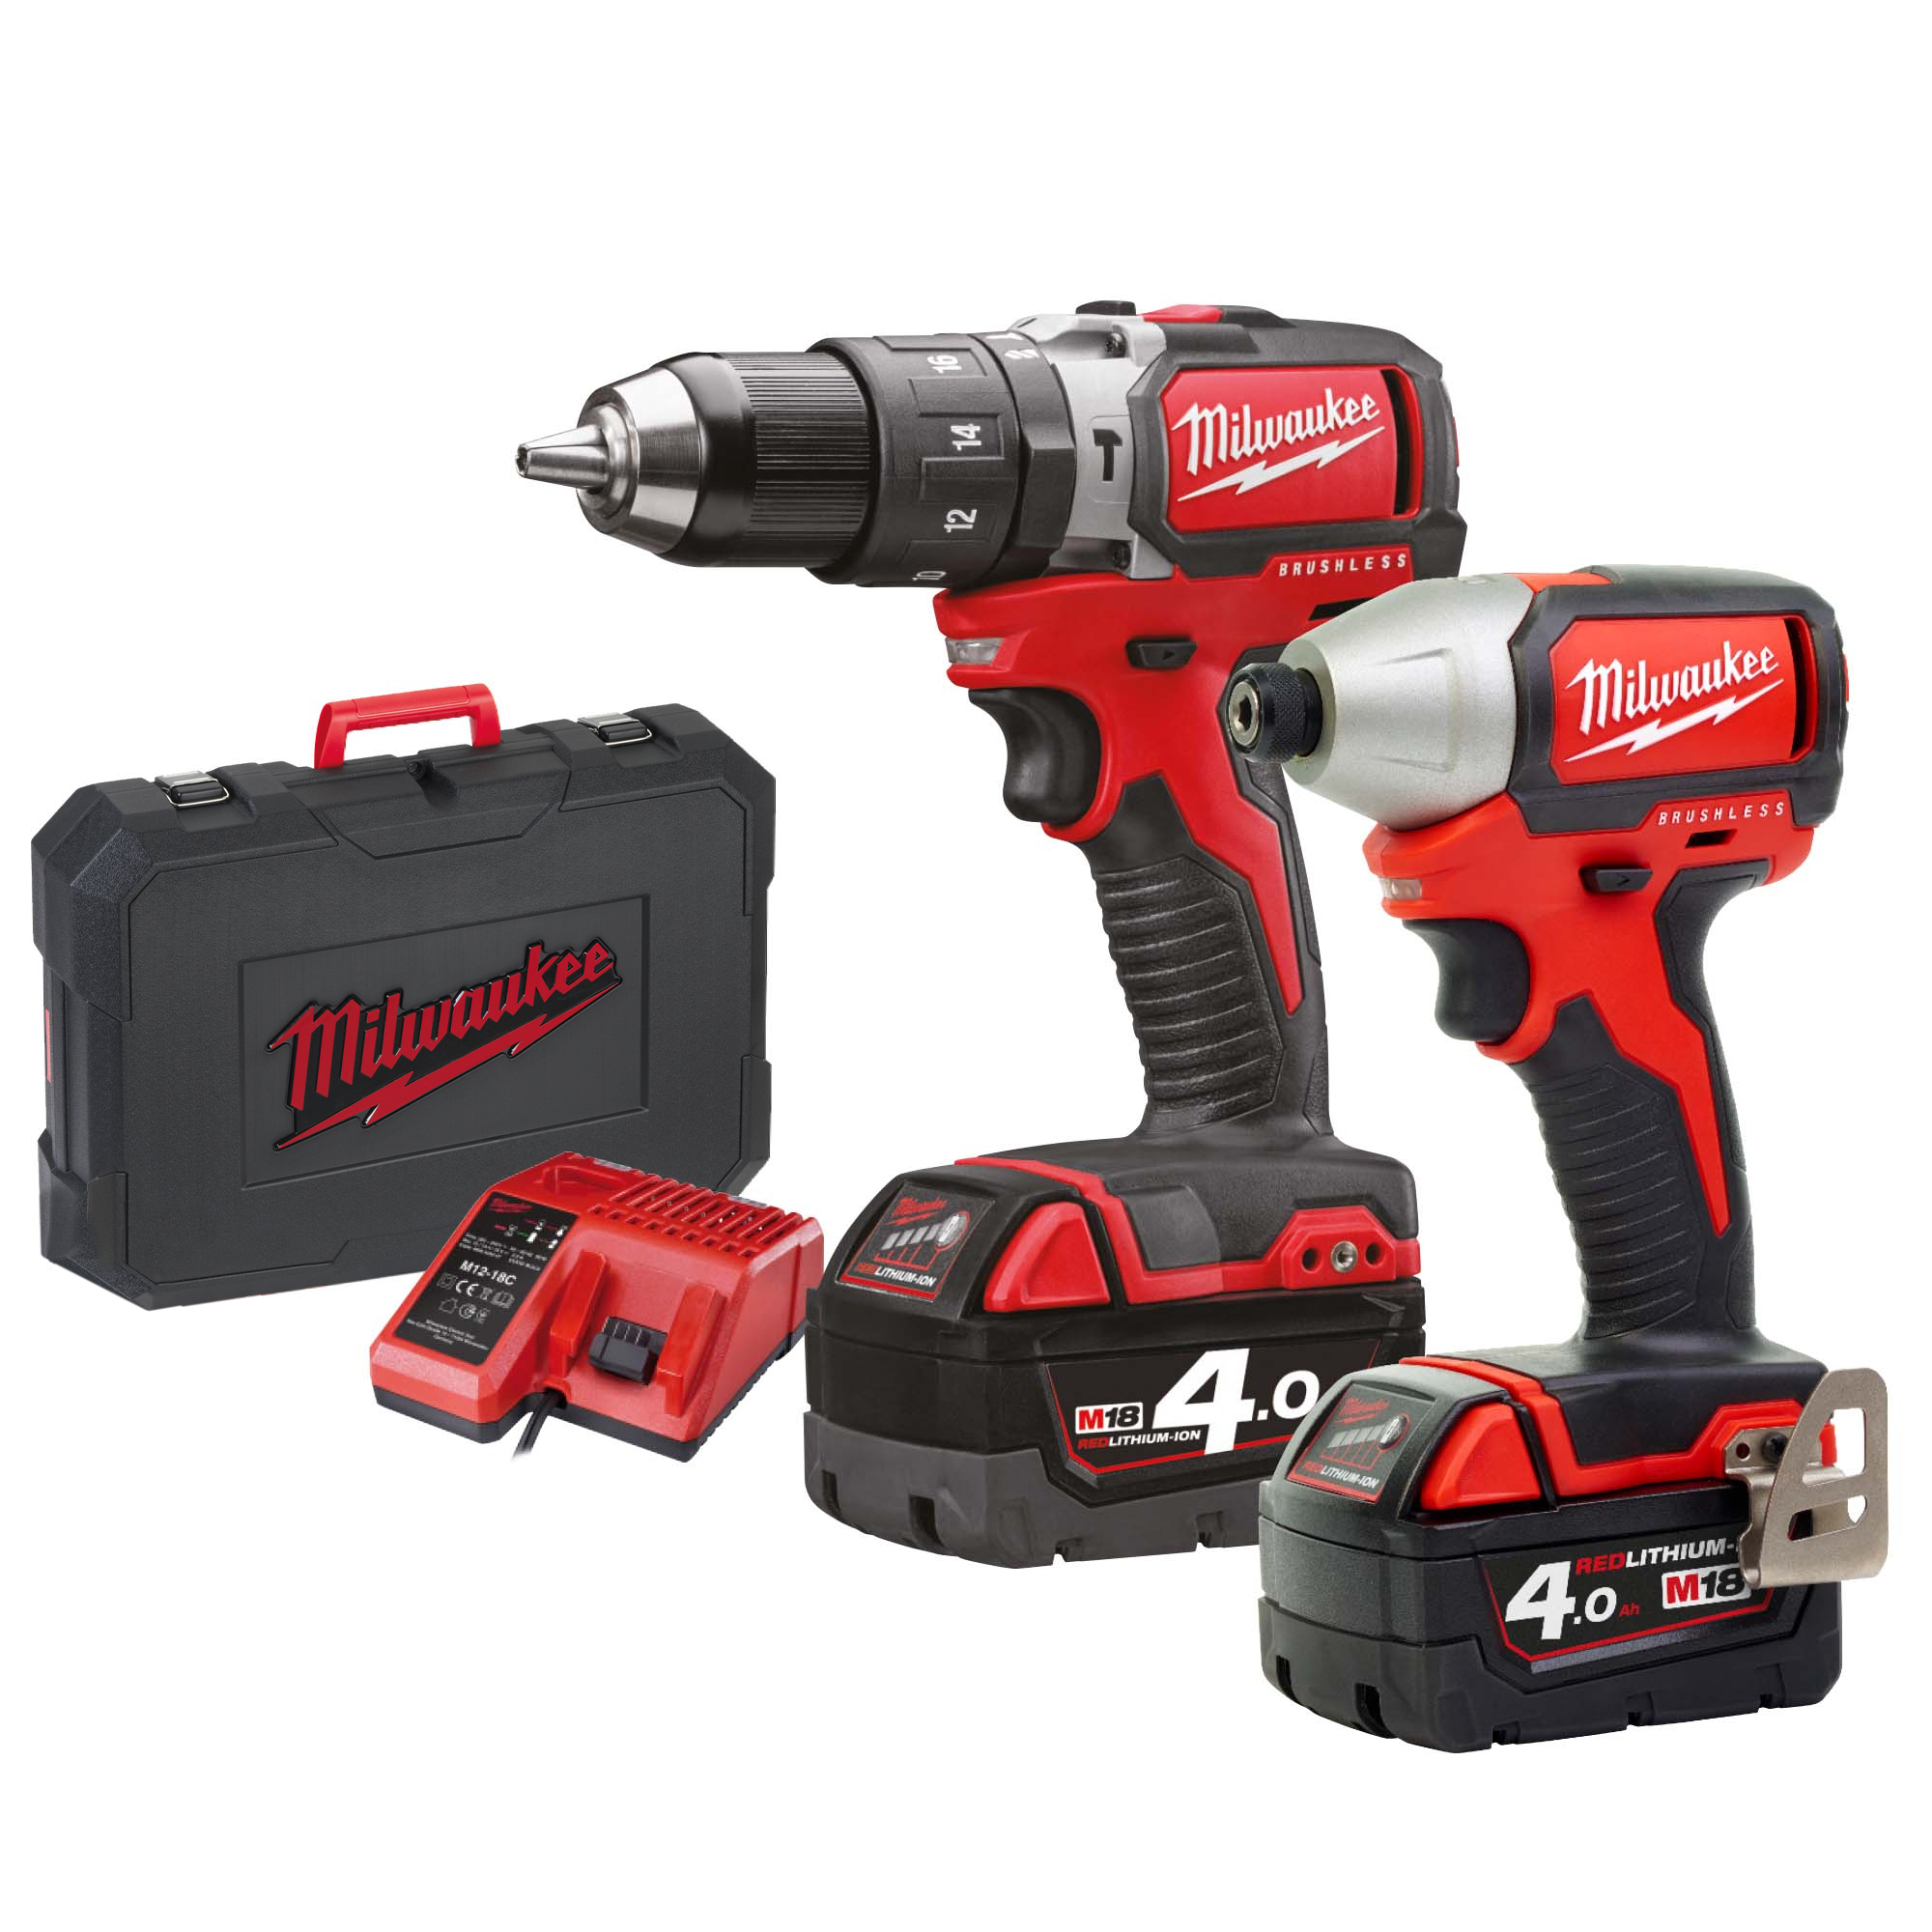 Milwaukee M18BLPP2A402C 18v M18 Brushless 2 Piece Kit with 2 x 4Ah Batteries, Charger and Case